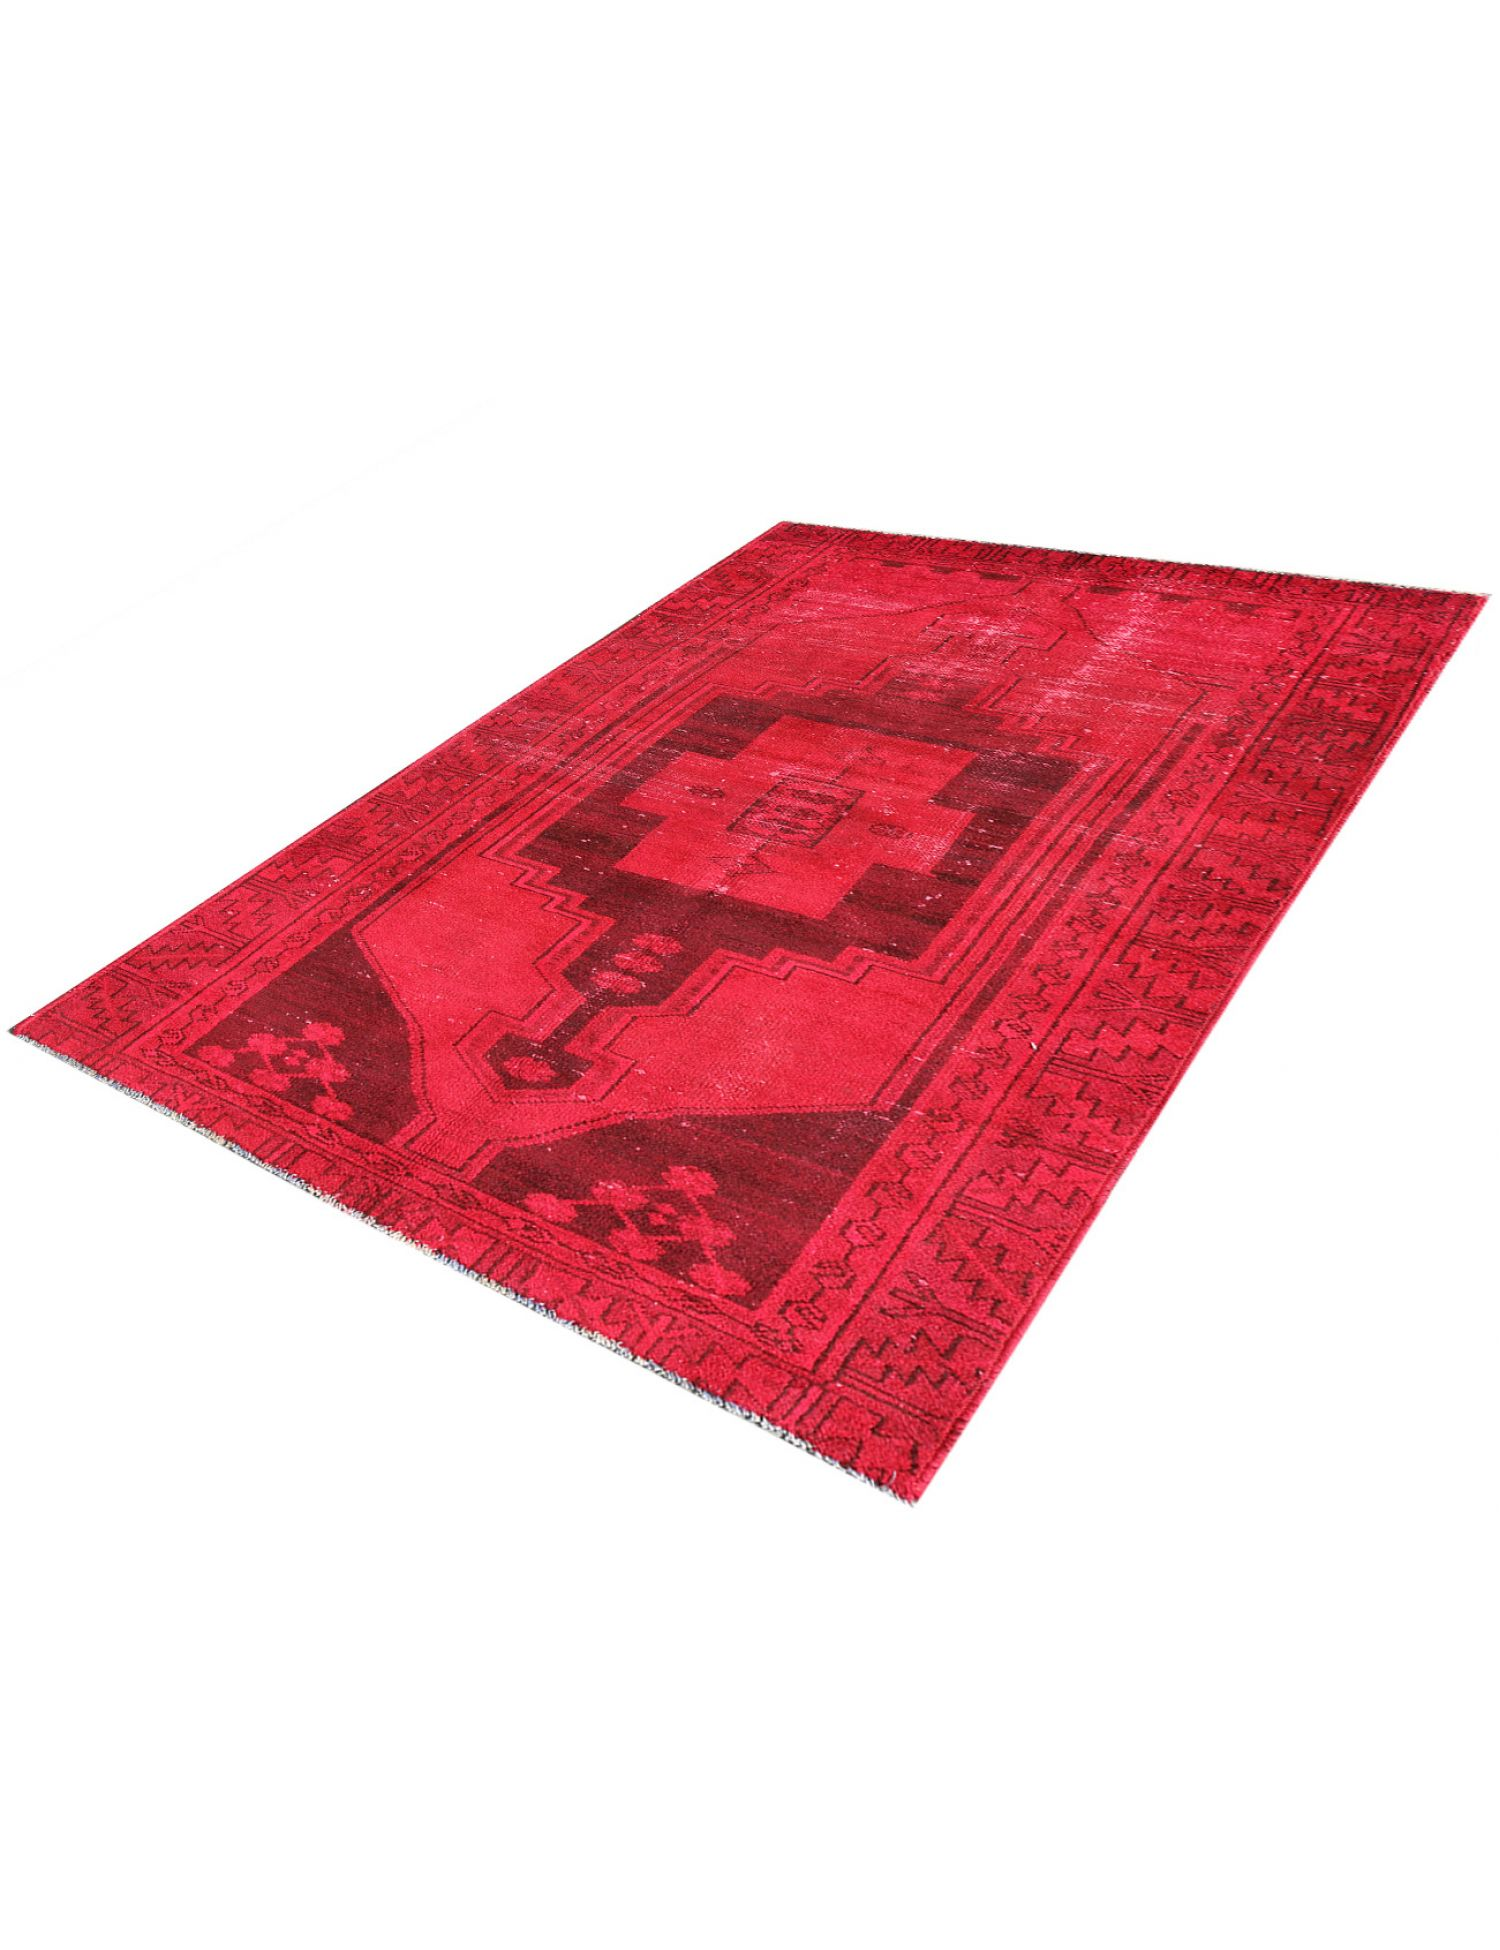 Vintage Carpet  red <br/>201 x 107 cm